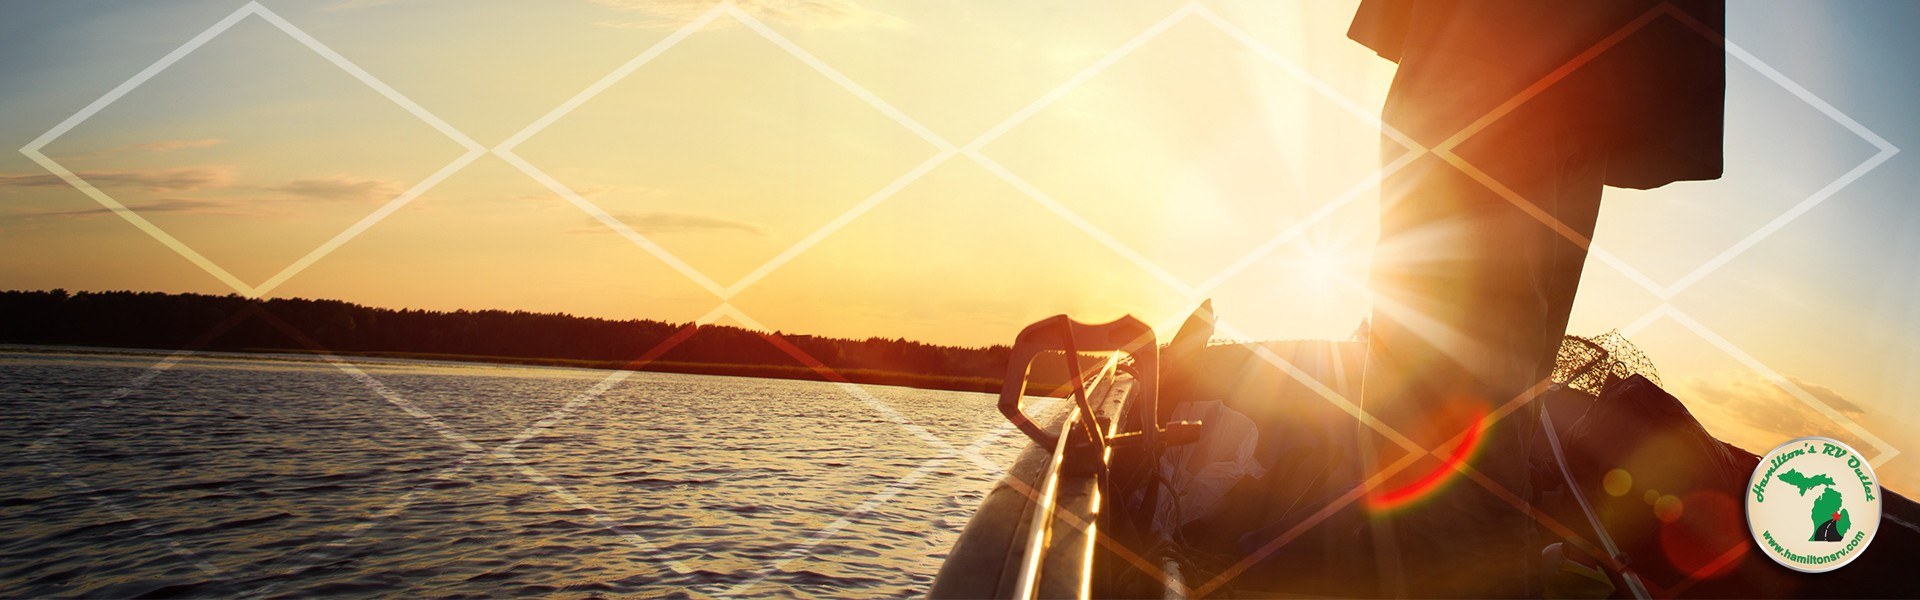 close up of fisherman in a boat on lake at sunset with net pattern overlaying